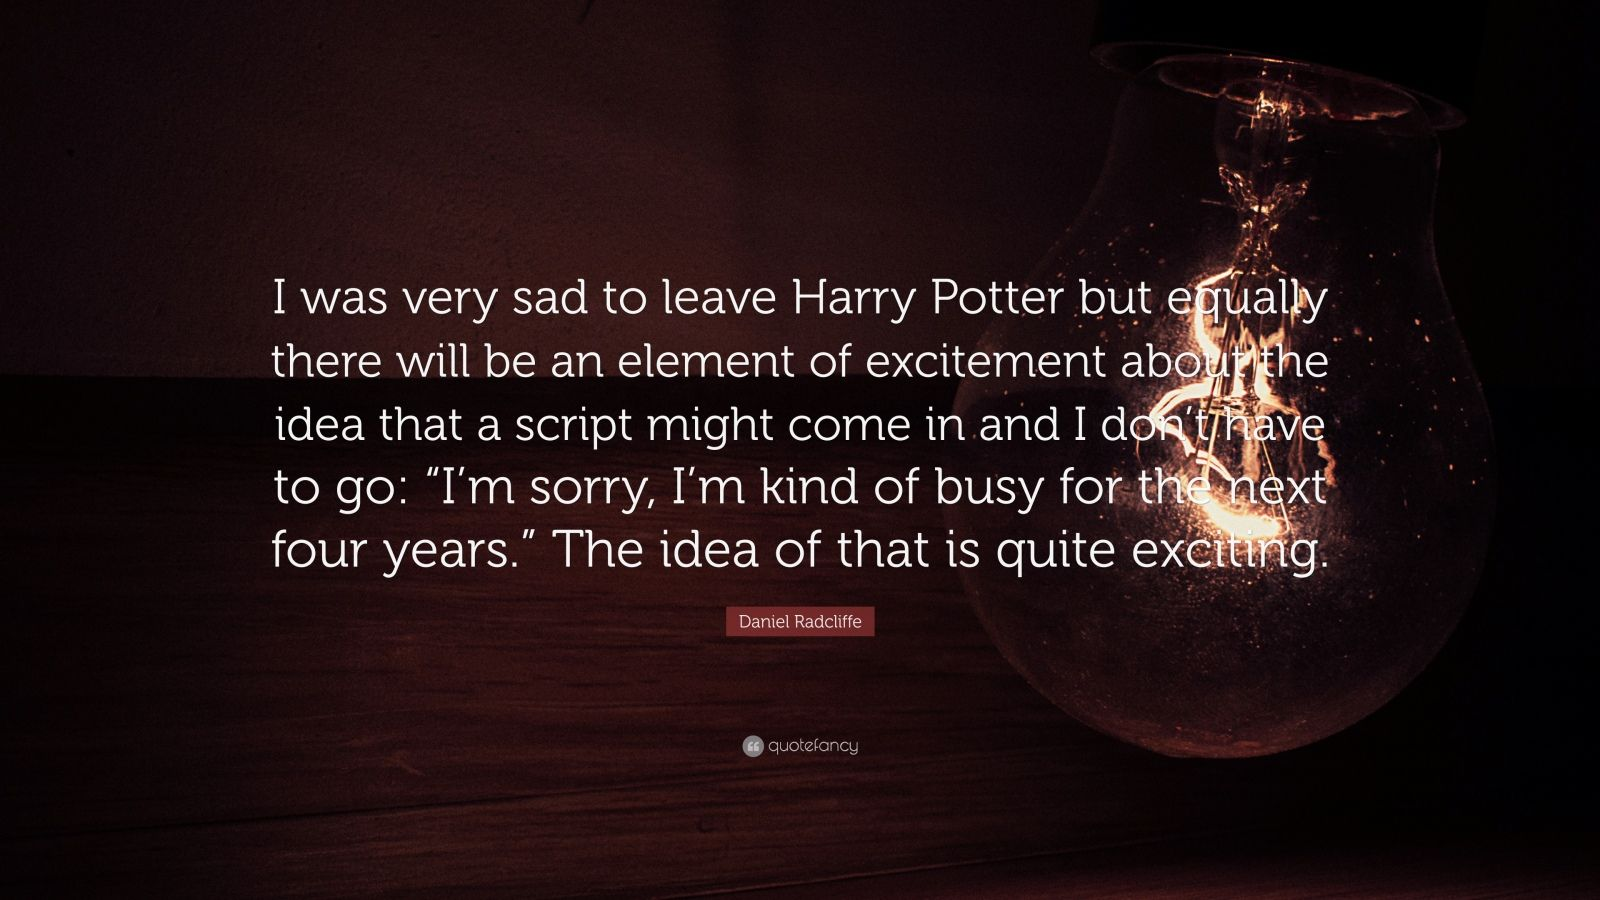 """Daniel Radcliffe Quote: """"I was very sad to leave Harry Potter but equally there will be an element of excitement about the idea that a script might come in and I don't have to go: """"I'm sorry, I'm kind of busy for the next four years."""" The idea of that is quite exciting."""""""